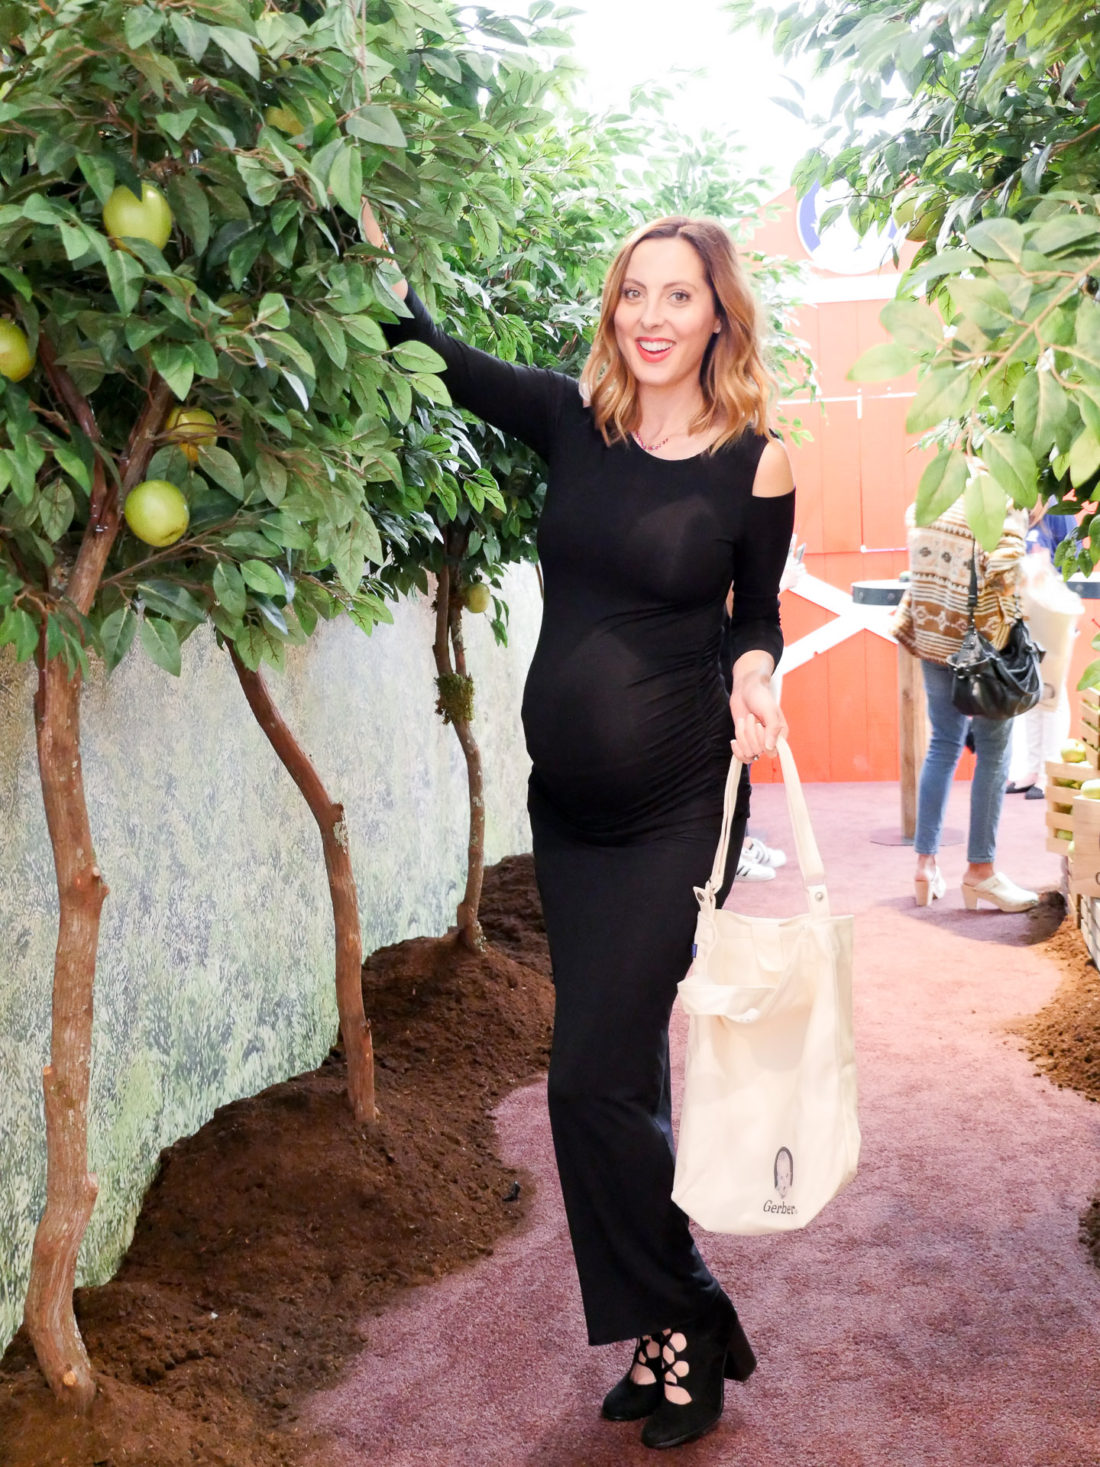 Eva Amurri Martino of lifestyle and motherhood blog Happily Eva After at the Gerber Babies Event in NYC, picking an apple off of a tree in the event's orchard